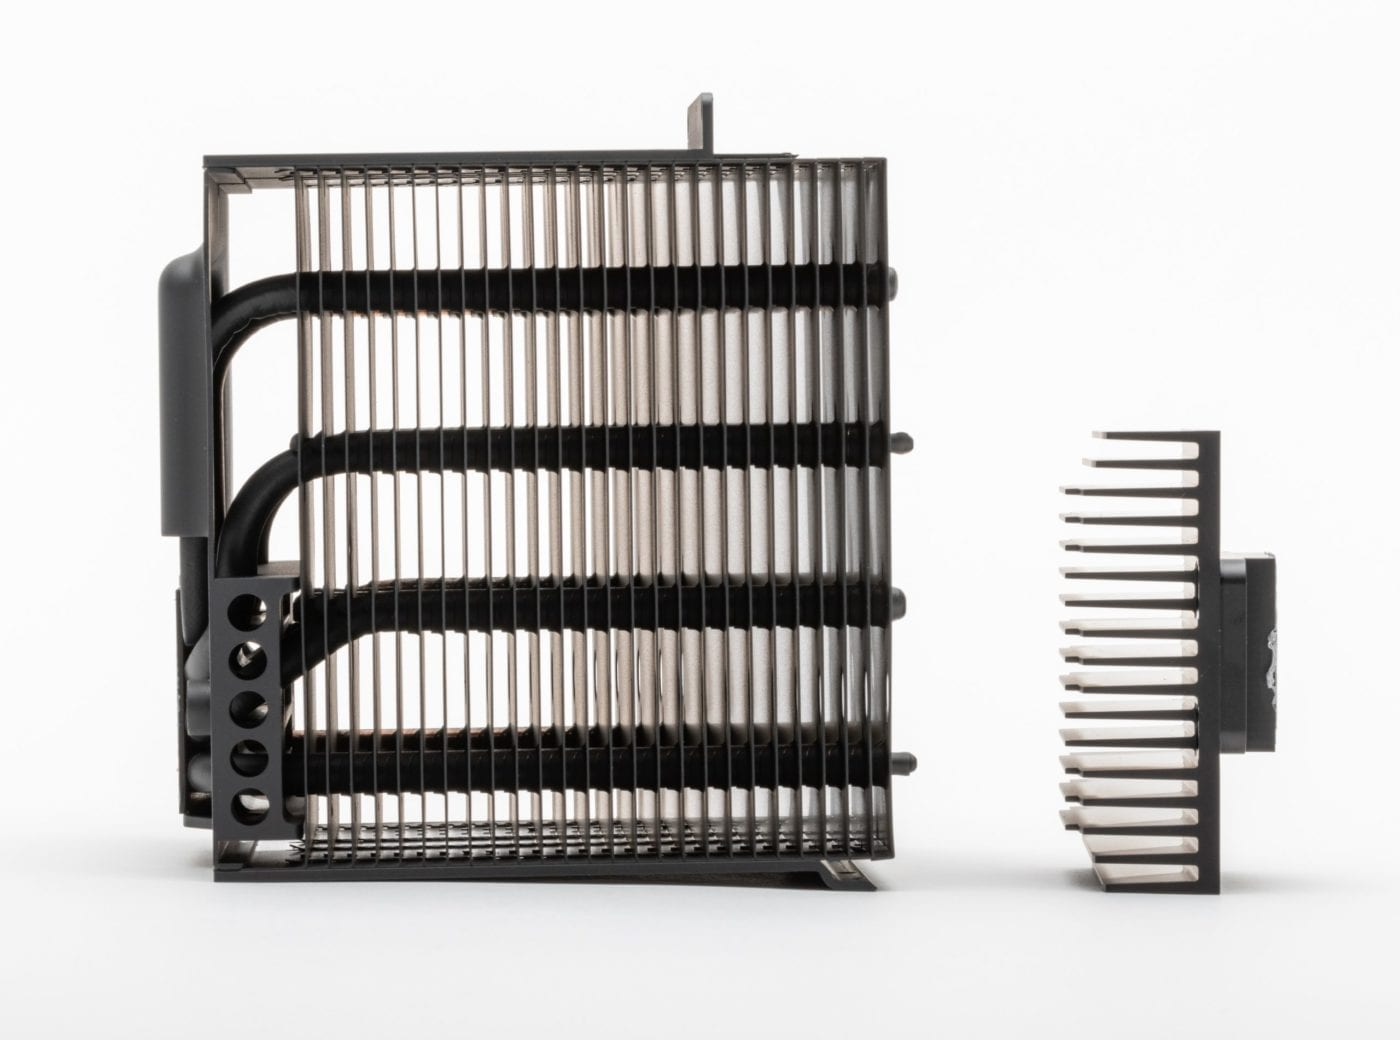 2019 Mac Pro – Side view of heatsinks showing airflow openings